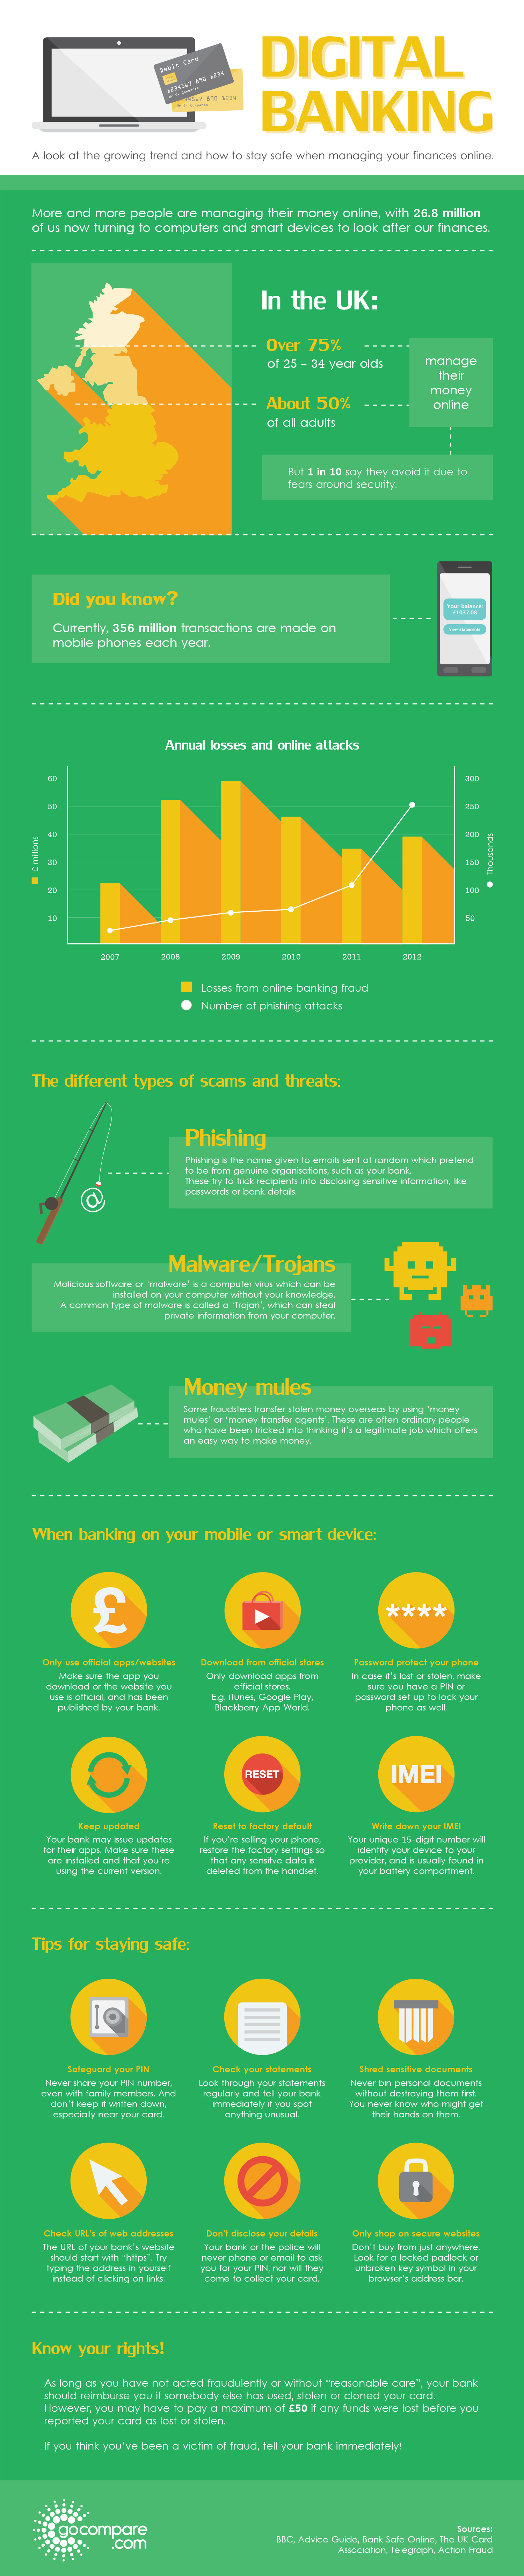 Card Fraud Black Friday Infographic